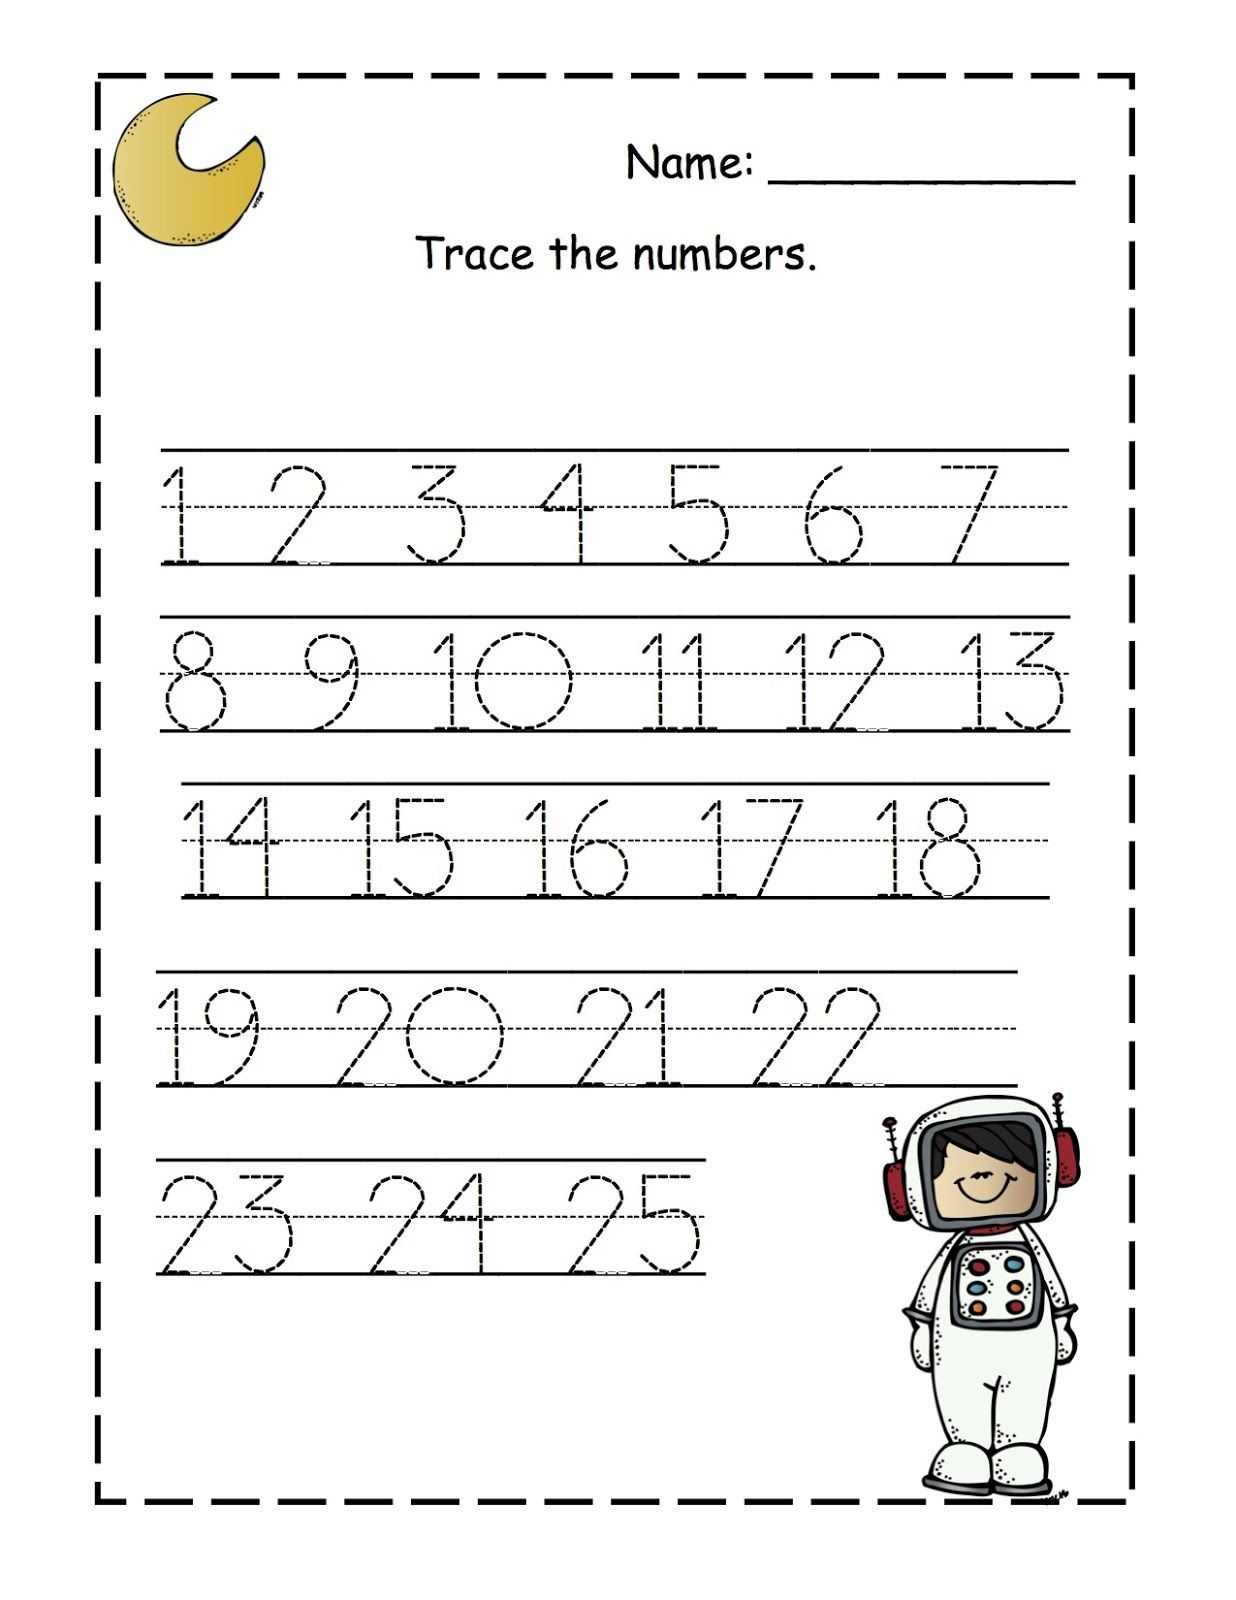 21 Best Printable Number Worksheets 1 Images On Best